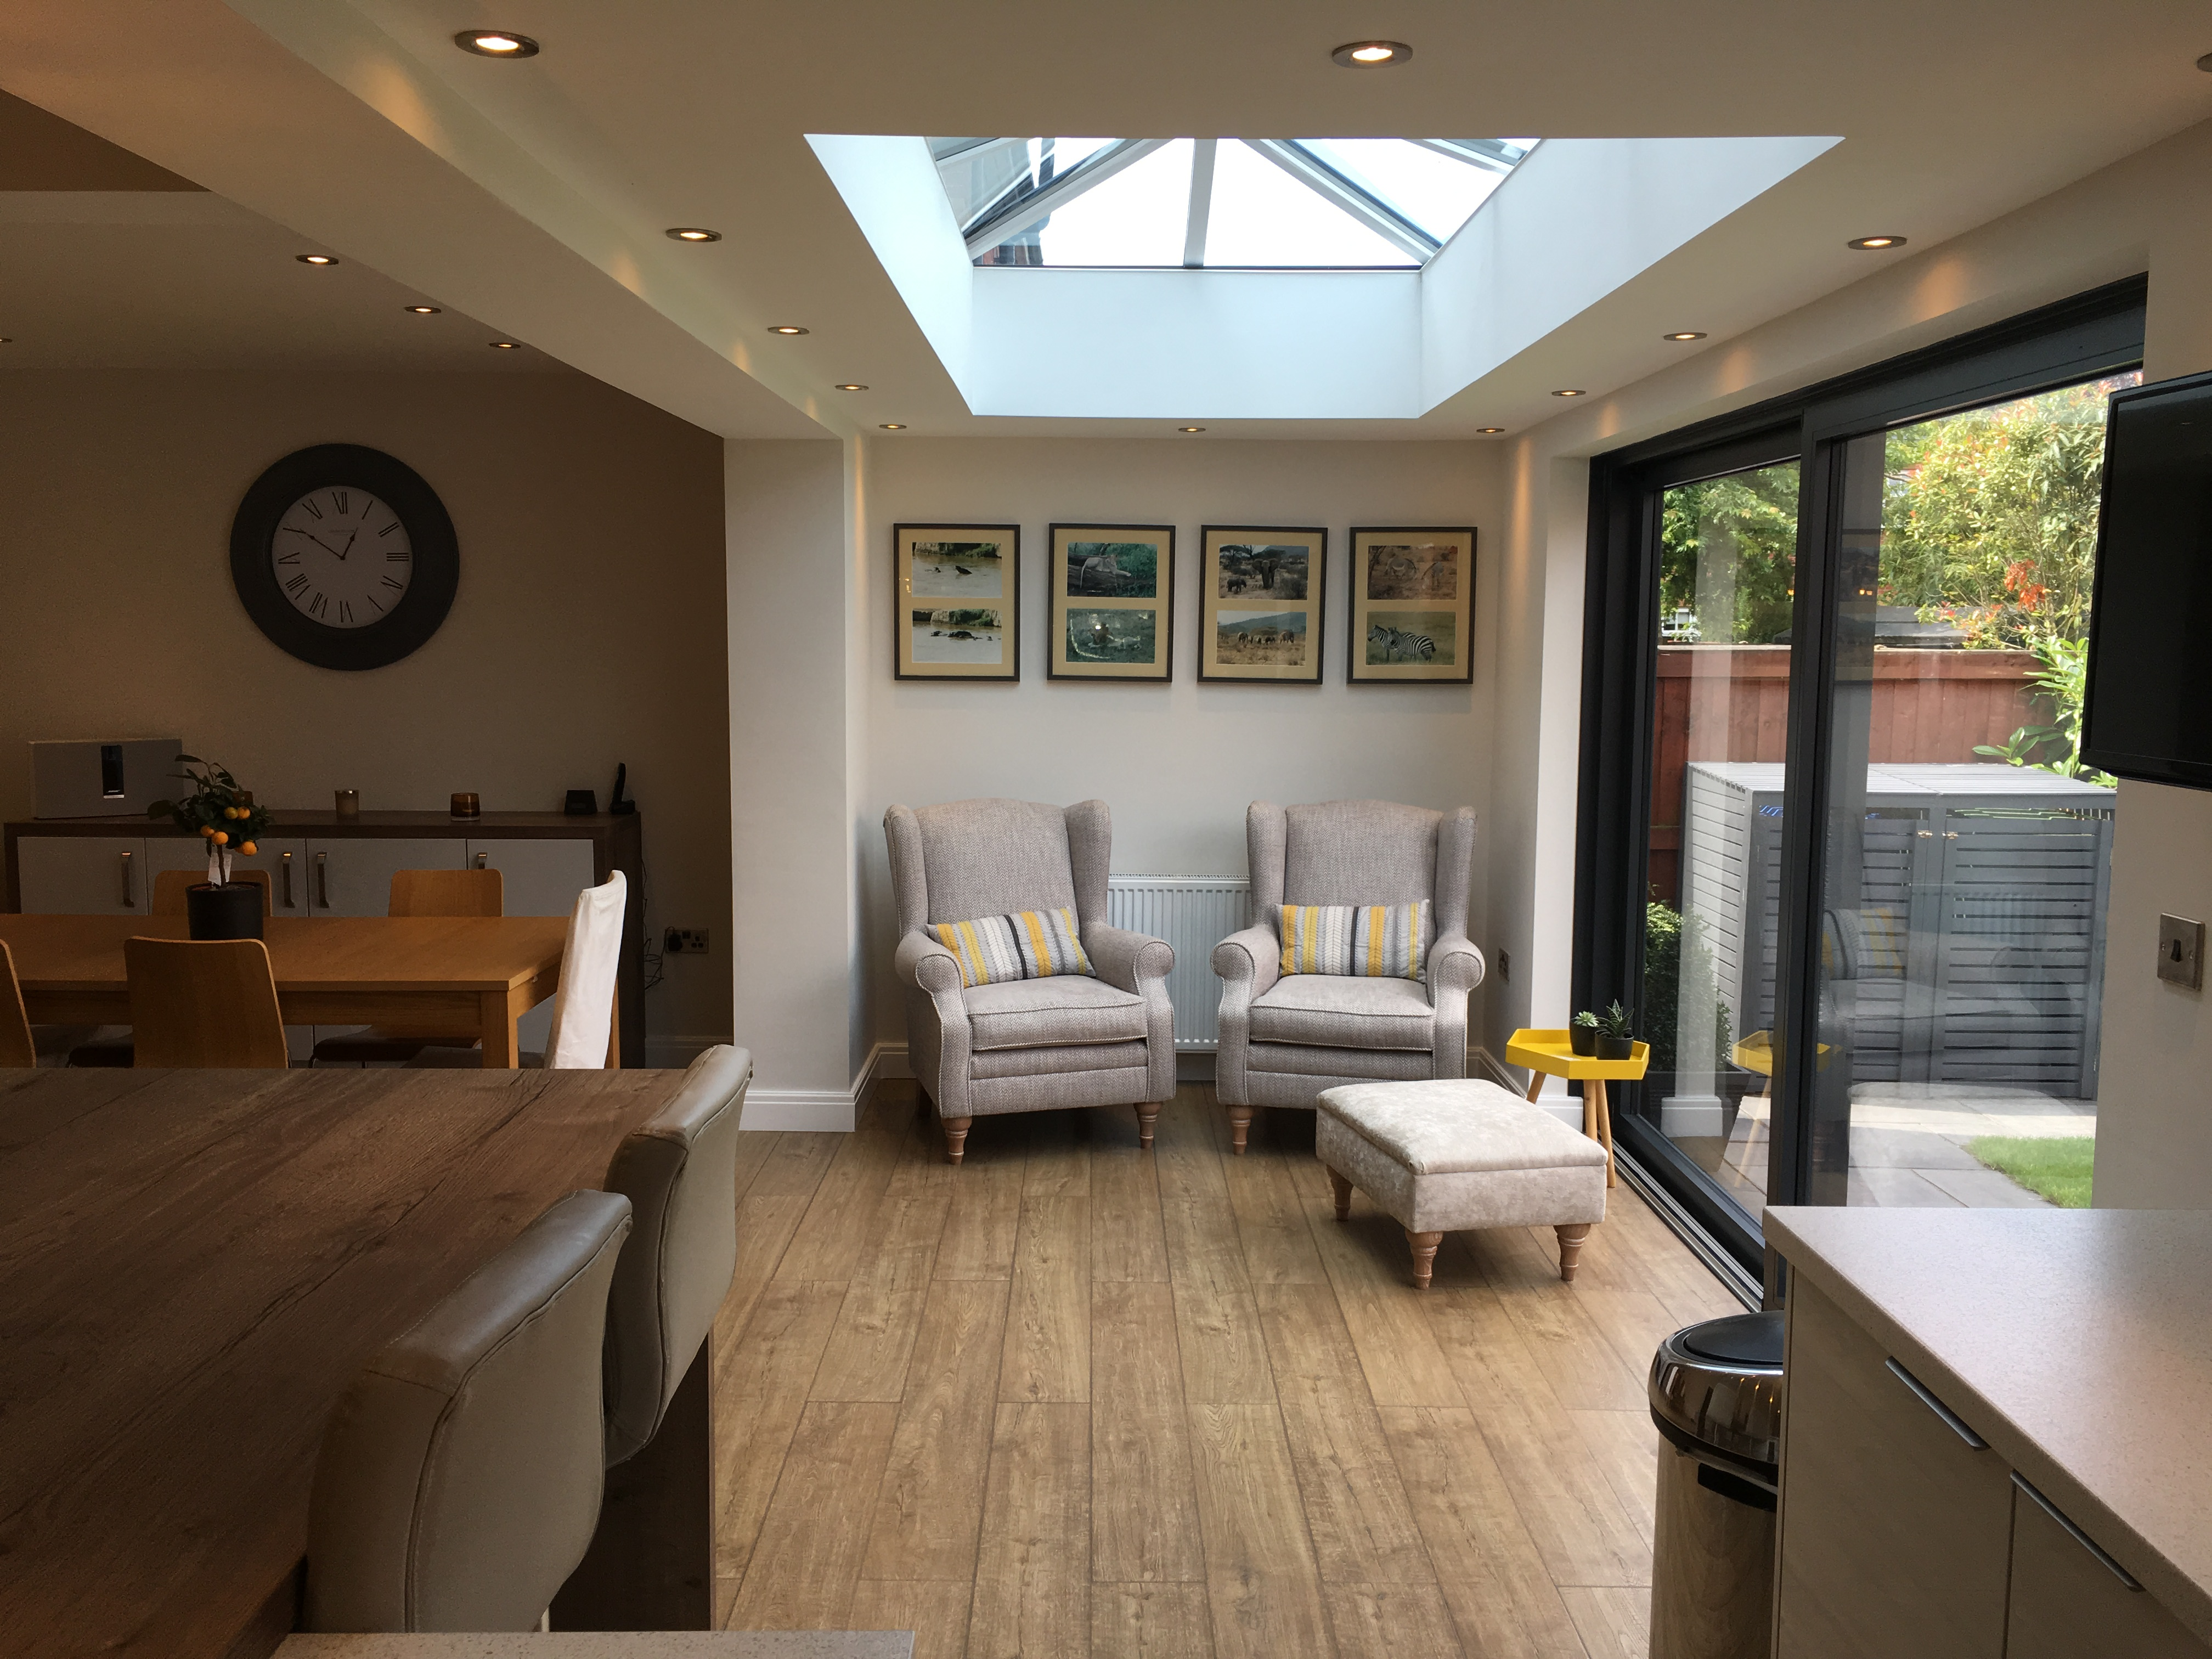 Single storey extension plans in Hull